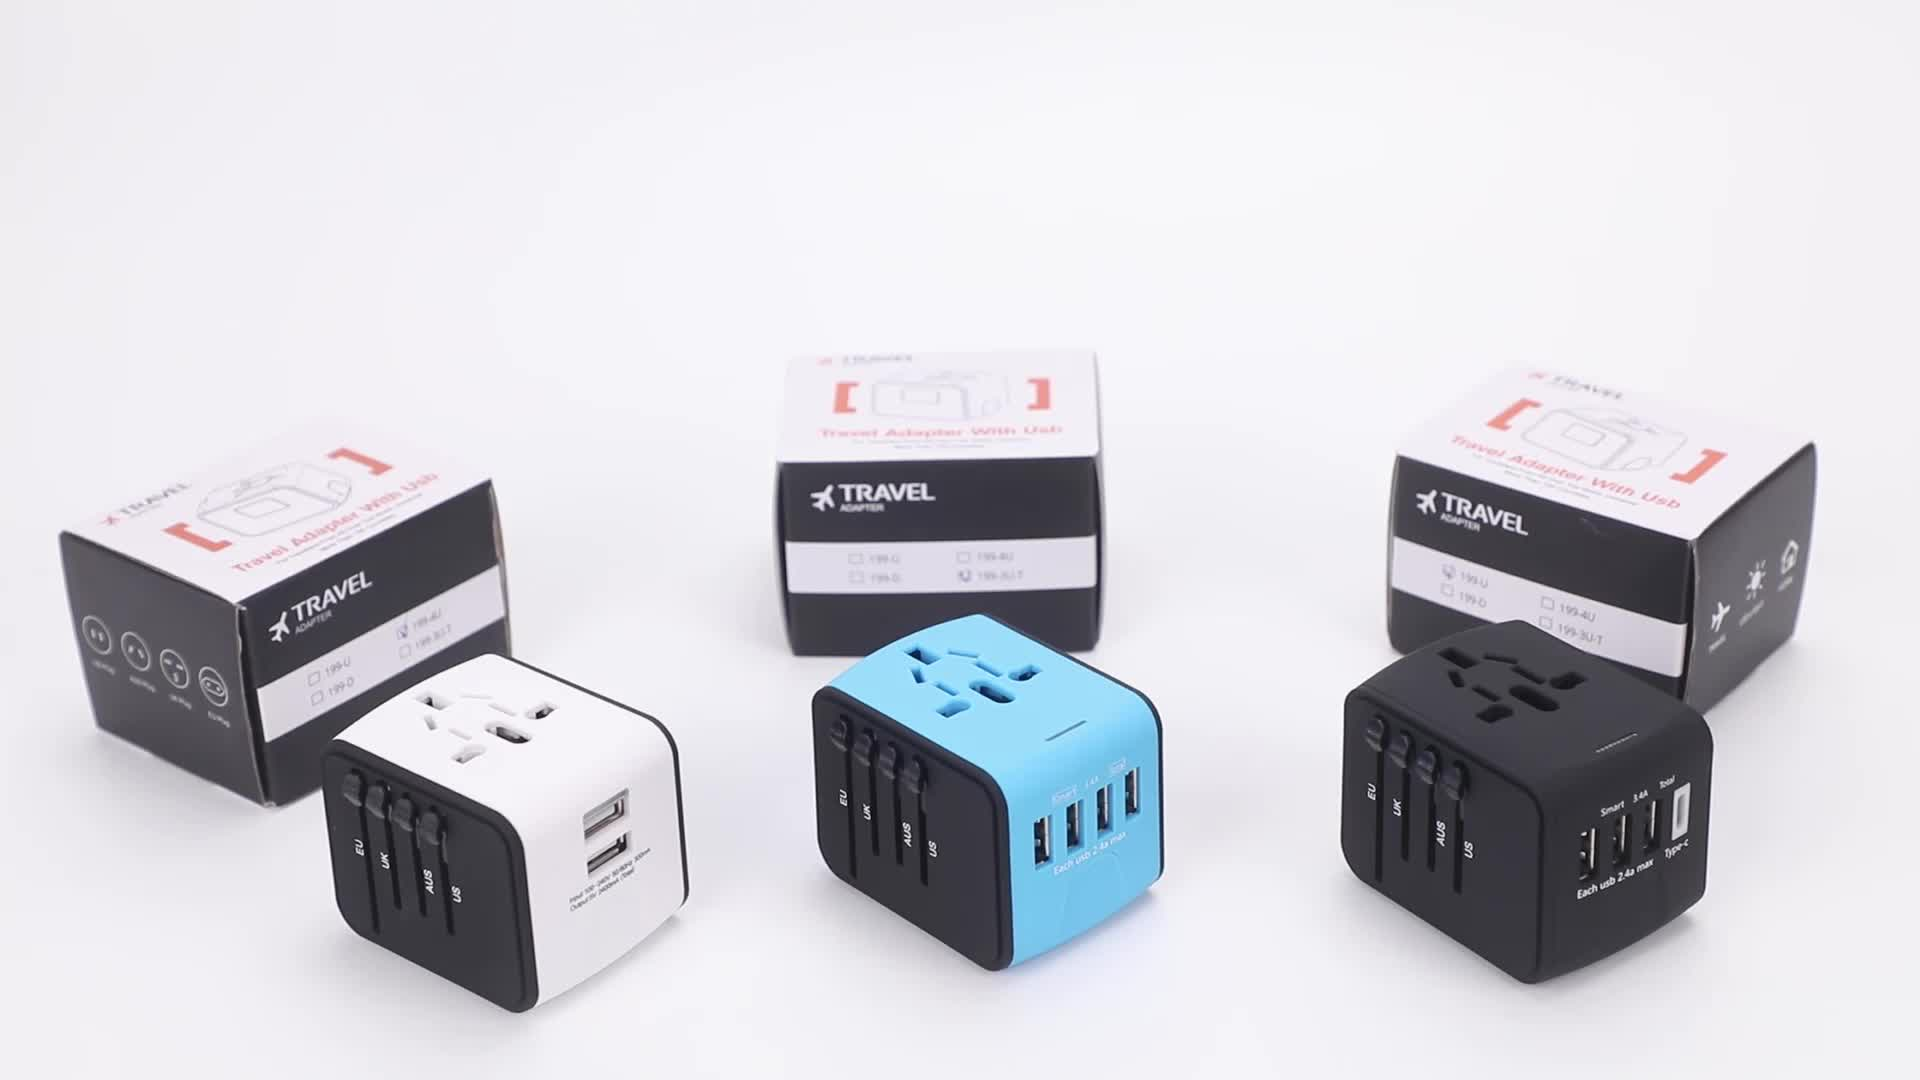 Travel adapter charger usb multipurpose universal travel adapter with 3.1a phone charger